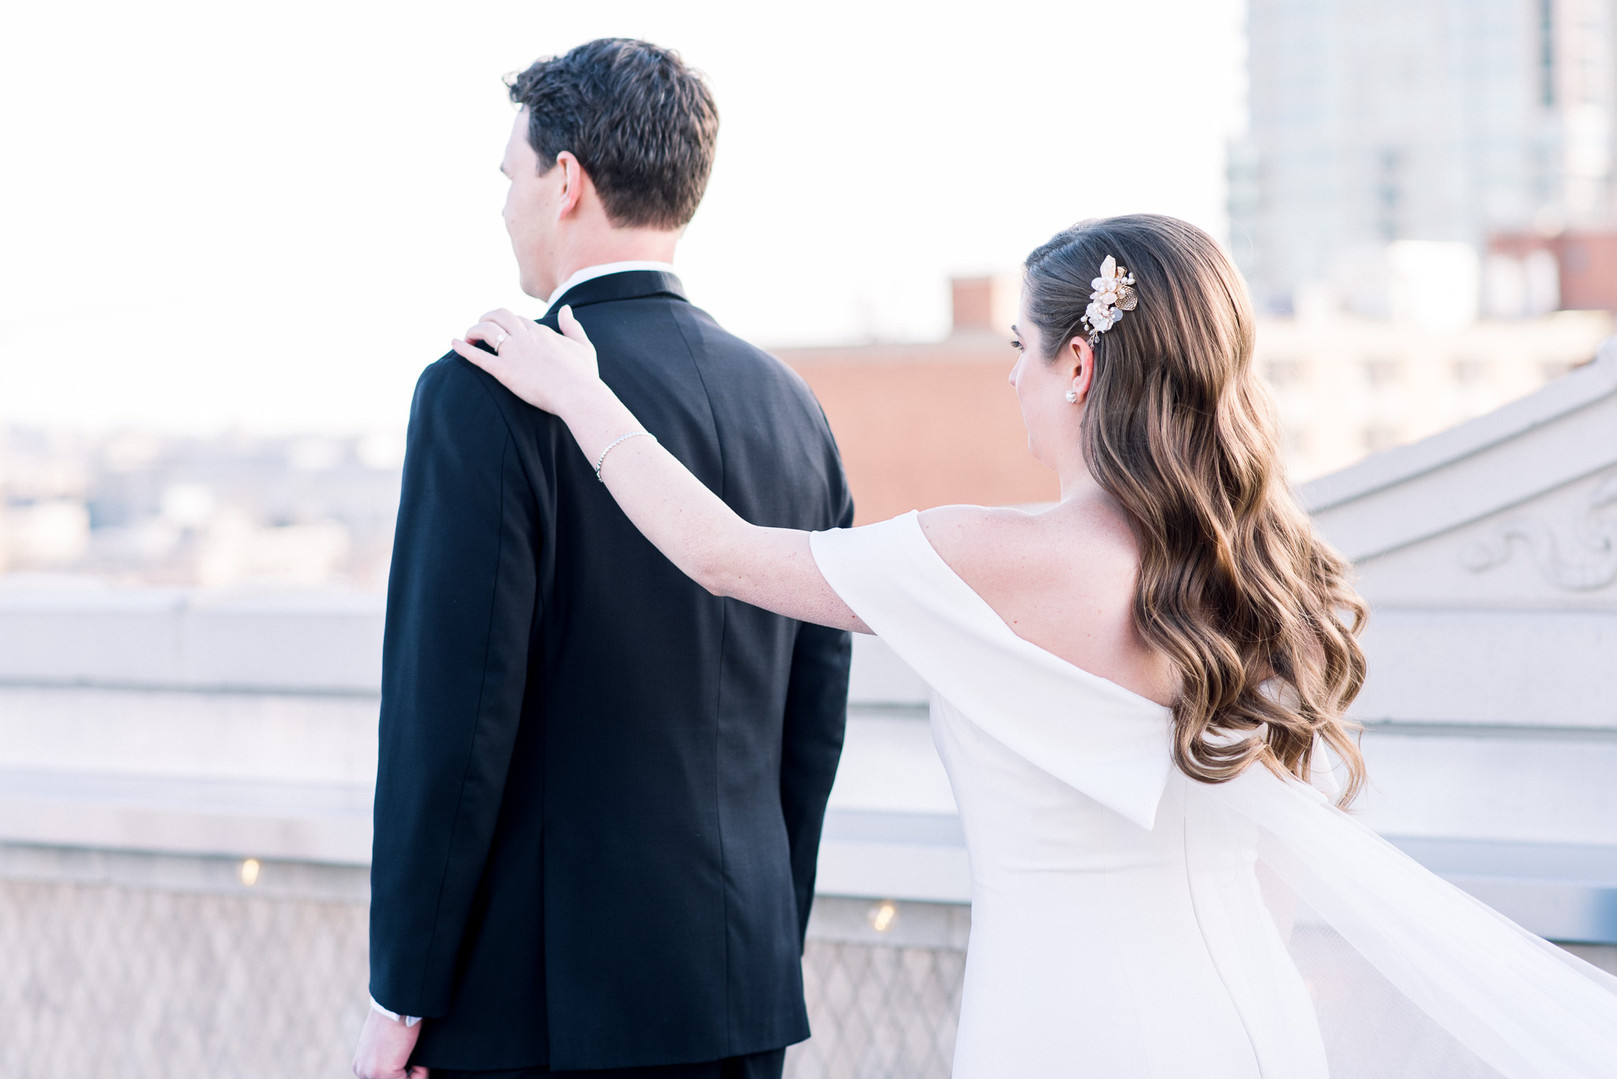 St. Louis Wedding Photo & Video Team, chase park plaza st louis wedding, st louis wedding venues